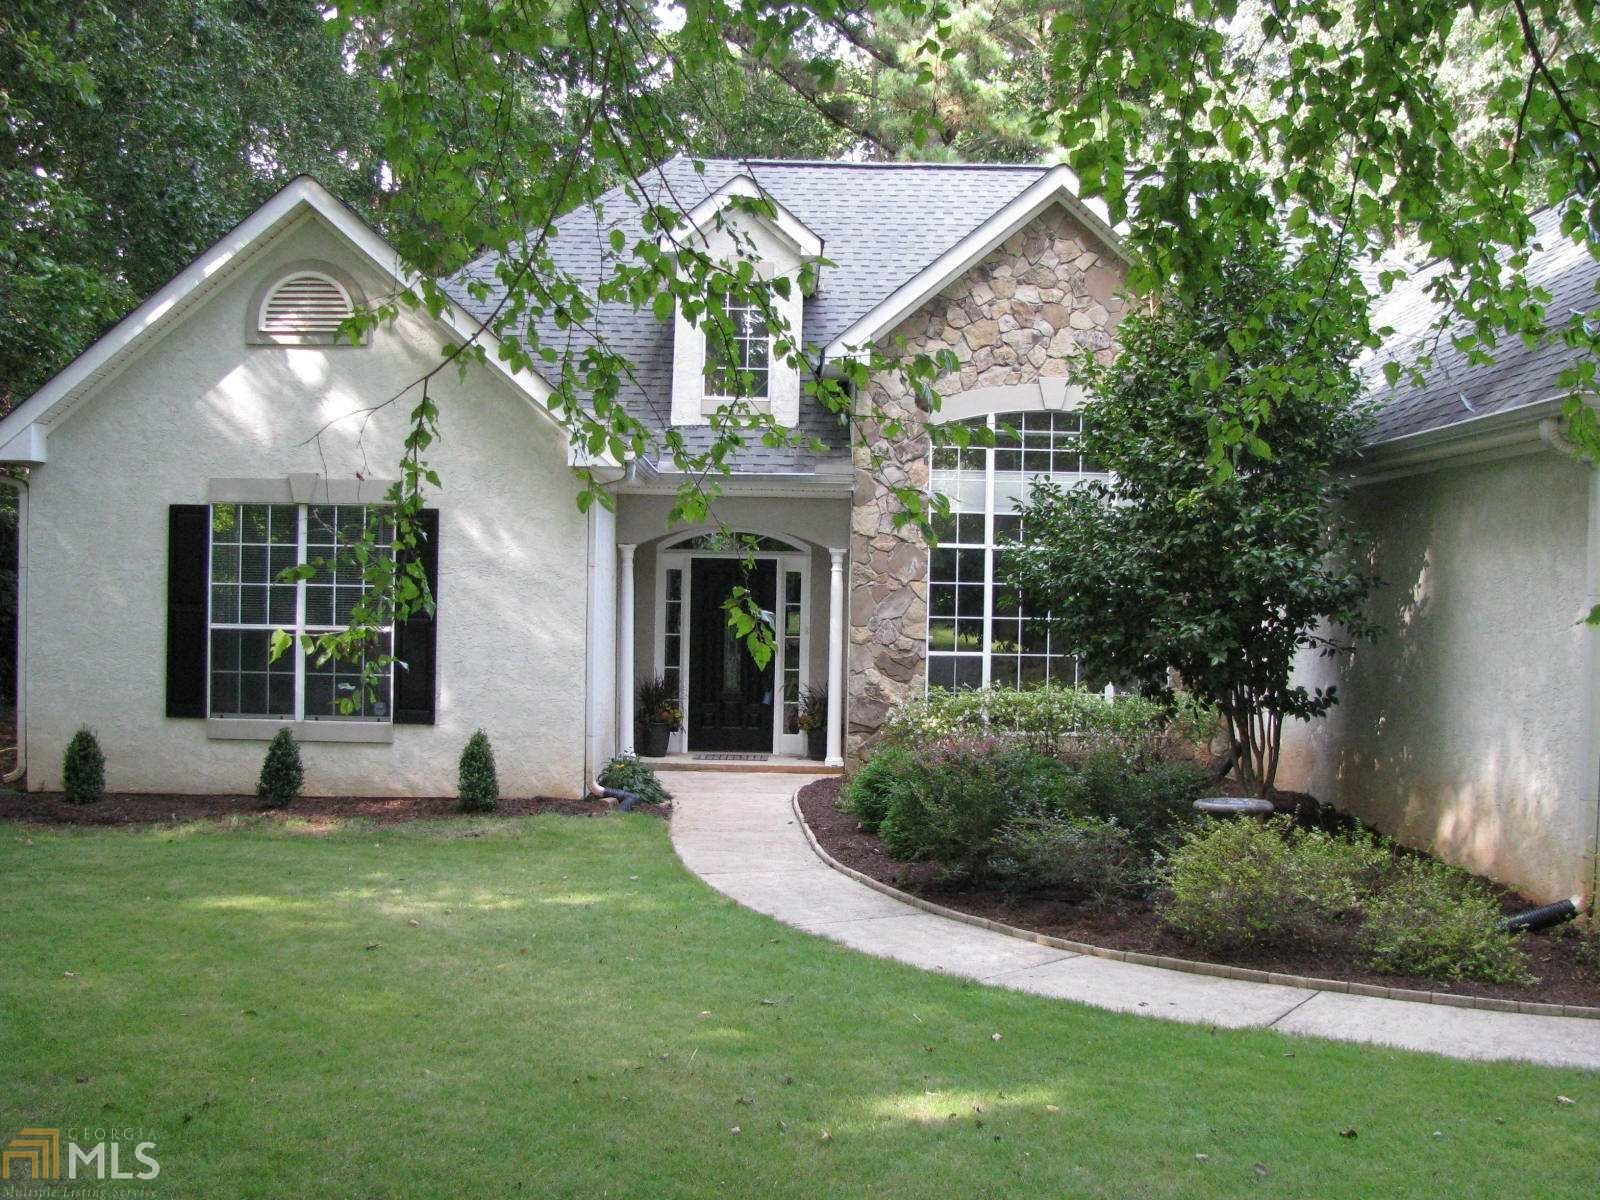 285 Windermere Cir, Newnan, GA 30265 - #: 8853326